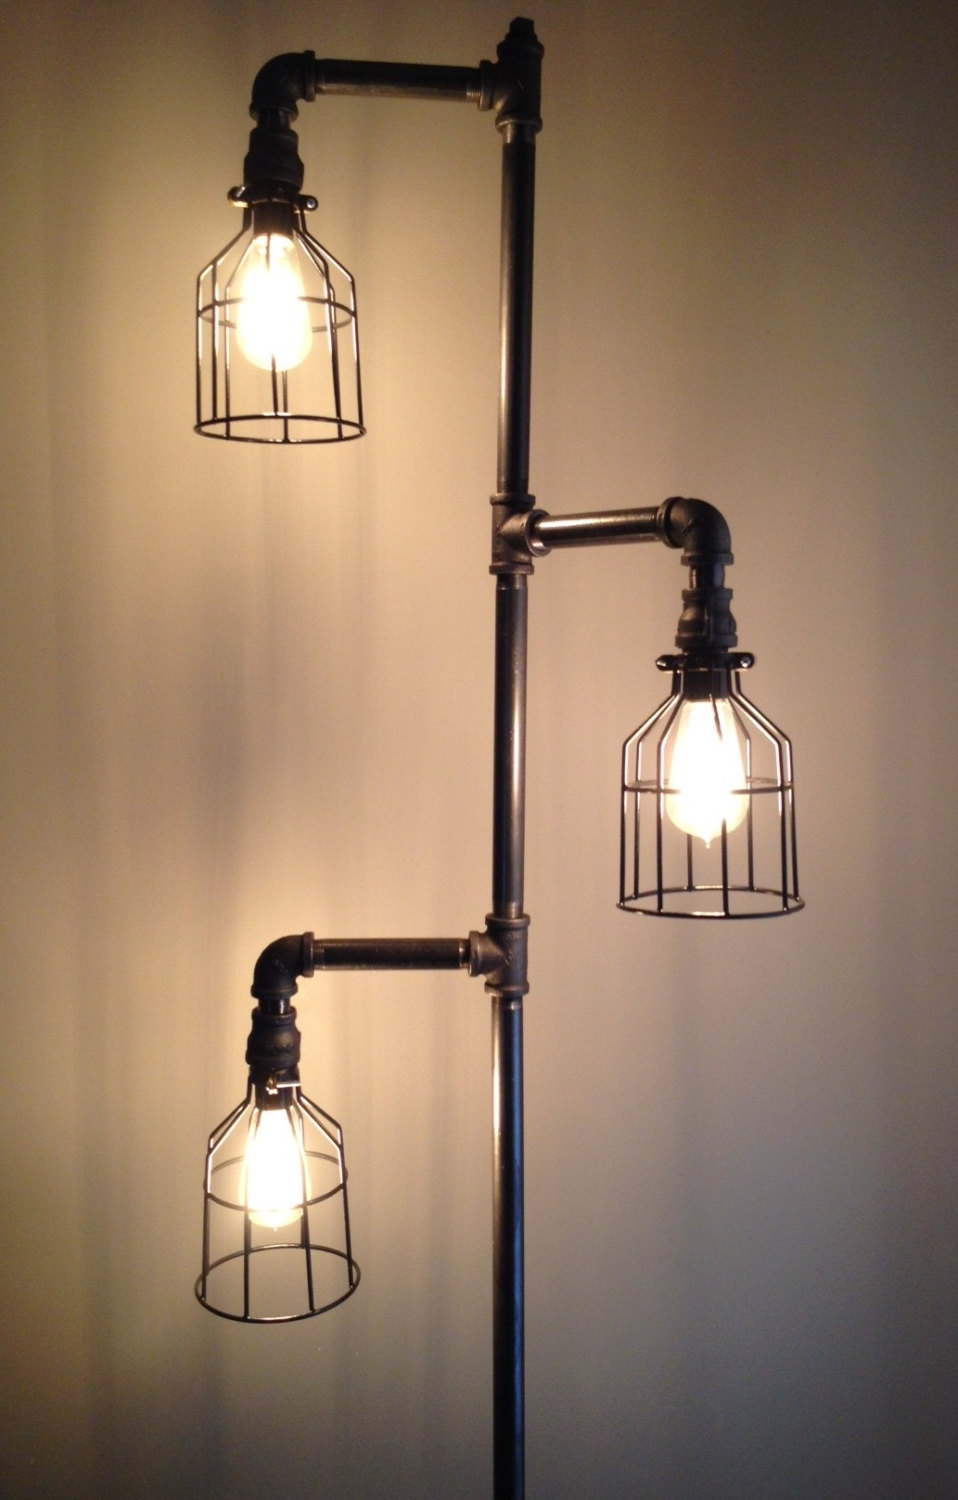 Inexpensive diy floor lamp ideas to make at home for How to make an industrial lamp